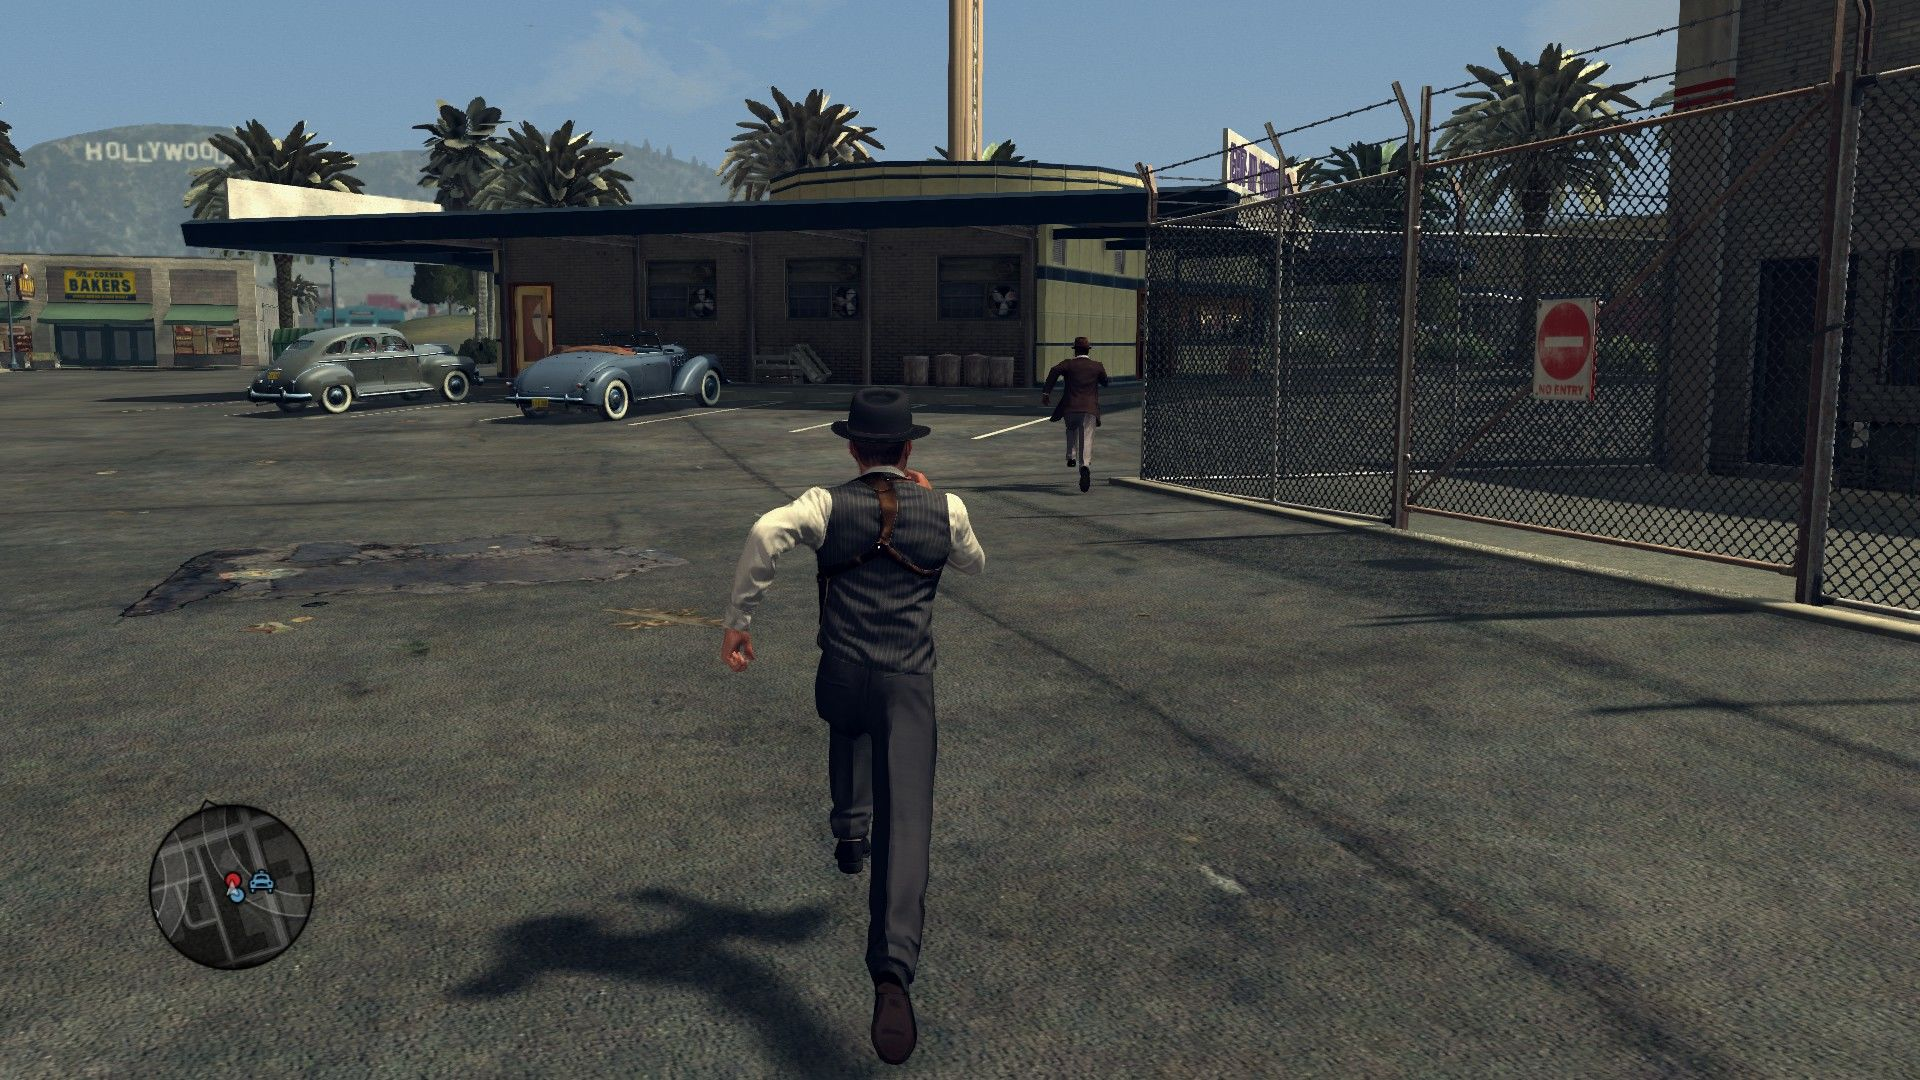 L.A. Noire: The Complete Edition Windows Chasing the criminal on foot.